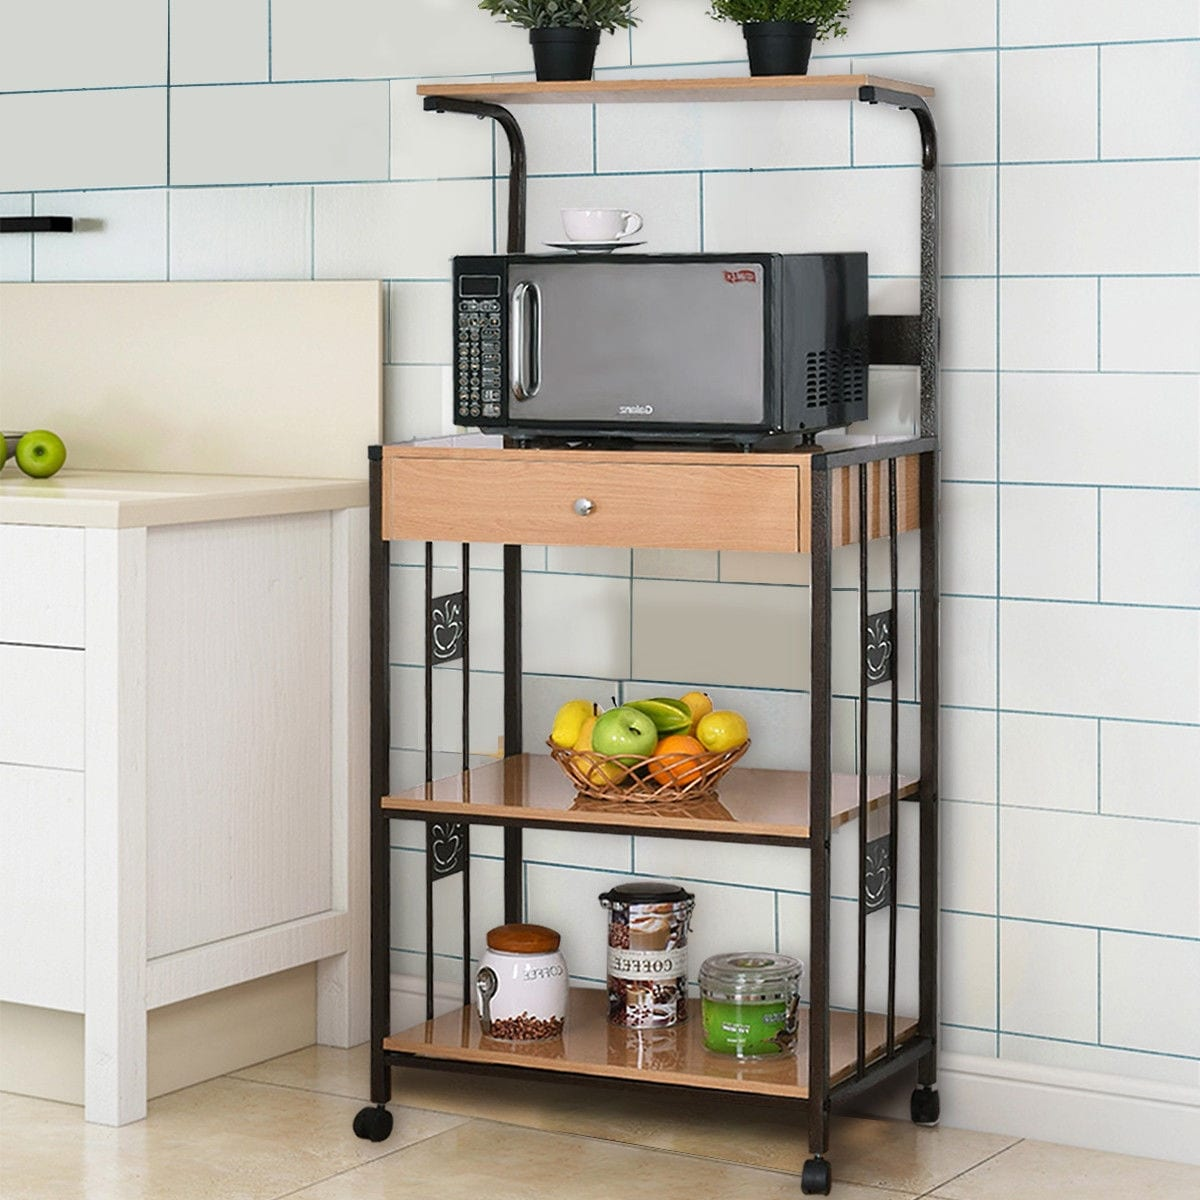 Shop Costway 59u0027u0027 Bakers Rack Microwave Stand Rolling Kitchen Storage Cart  W/Electric Outlet   Free Shipping Today   Overstock.com   16315083